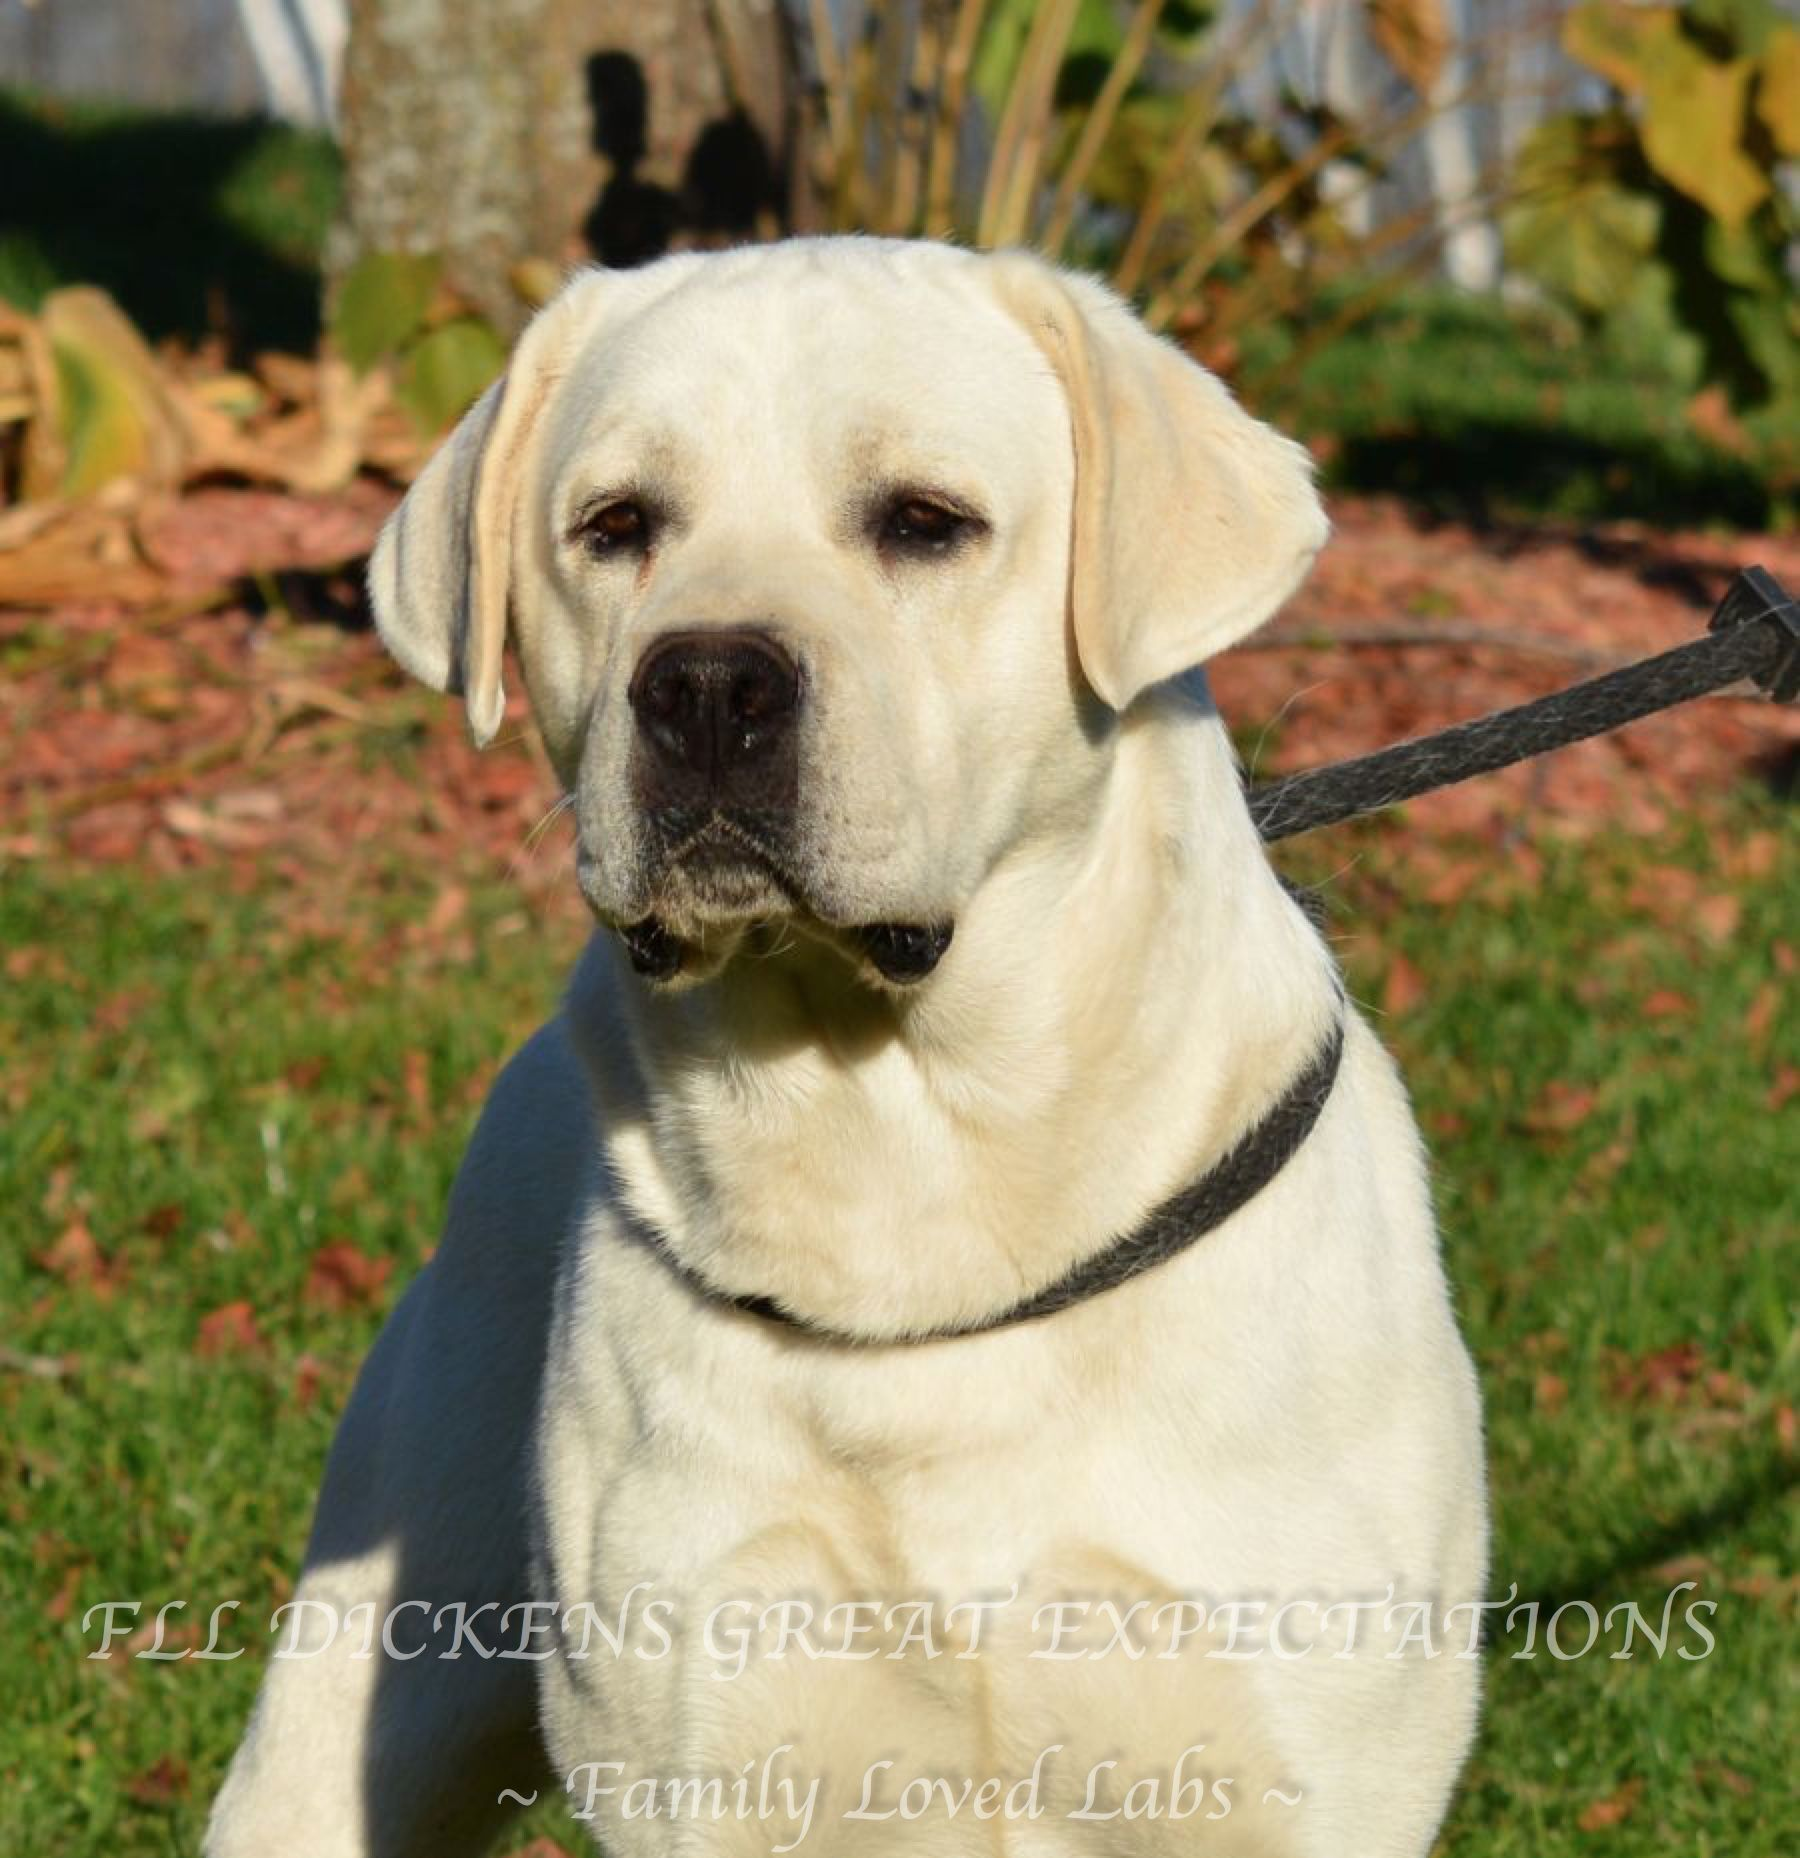 Fll Dickens Great Expectations Family Loved Labs White Akc Registered English Lab Beautiful English Lab Blo English Lab Puppies Lab Puppies English Lab